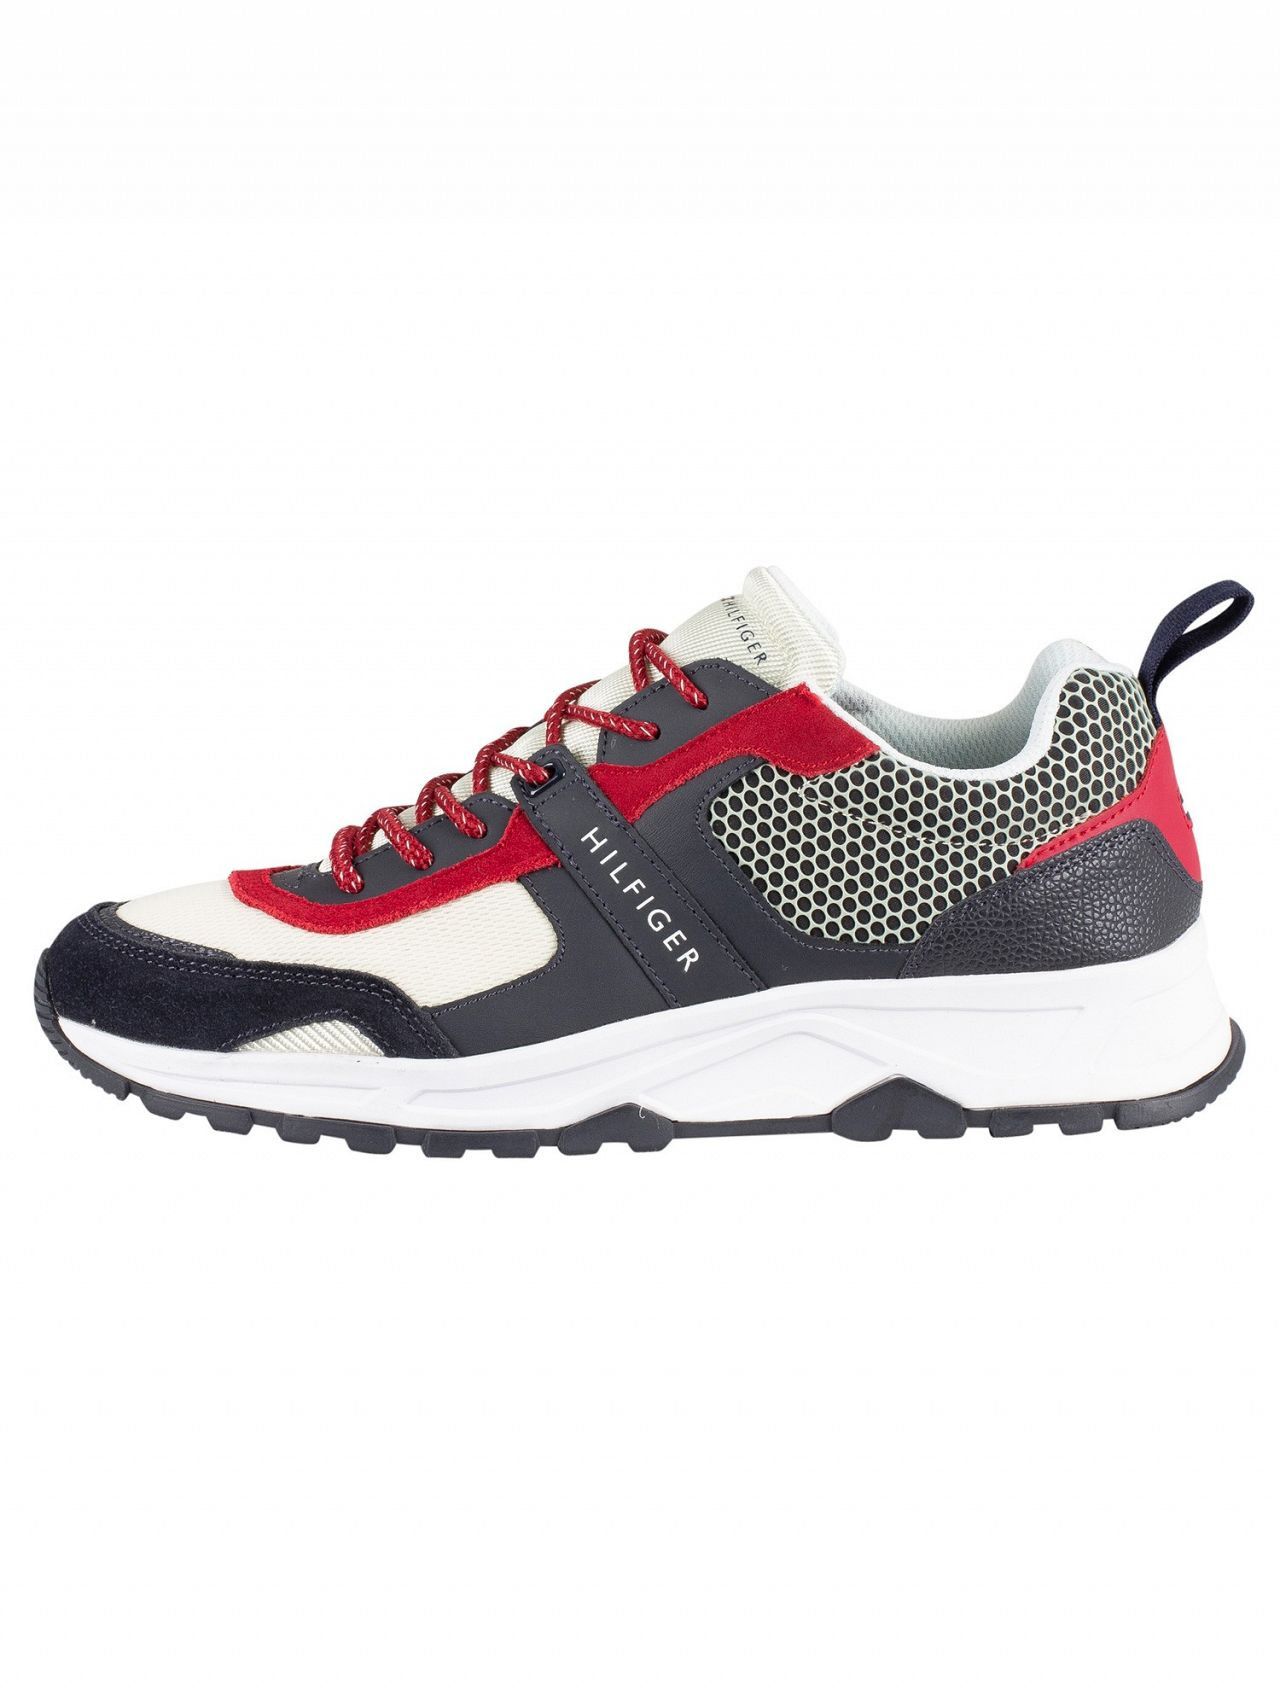 252f6aff Tommy Hilfiger Black/Beige Material Mix Lightweight Trainers | Standout